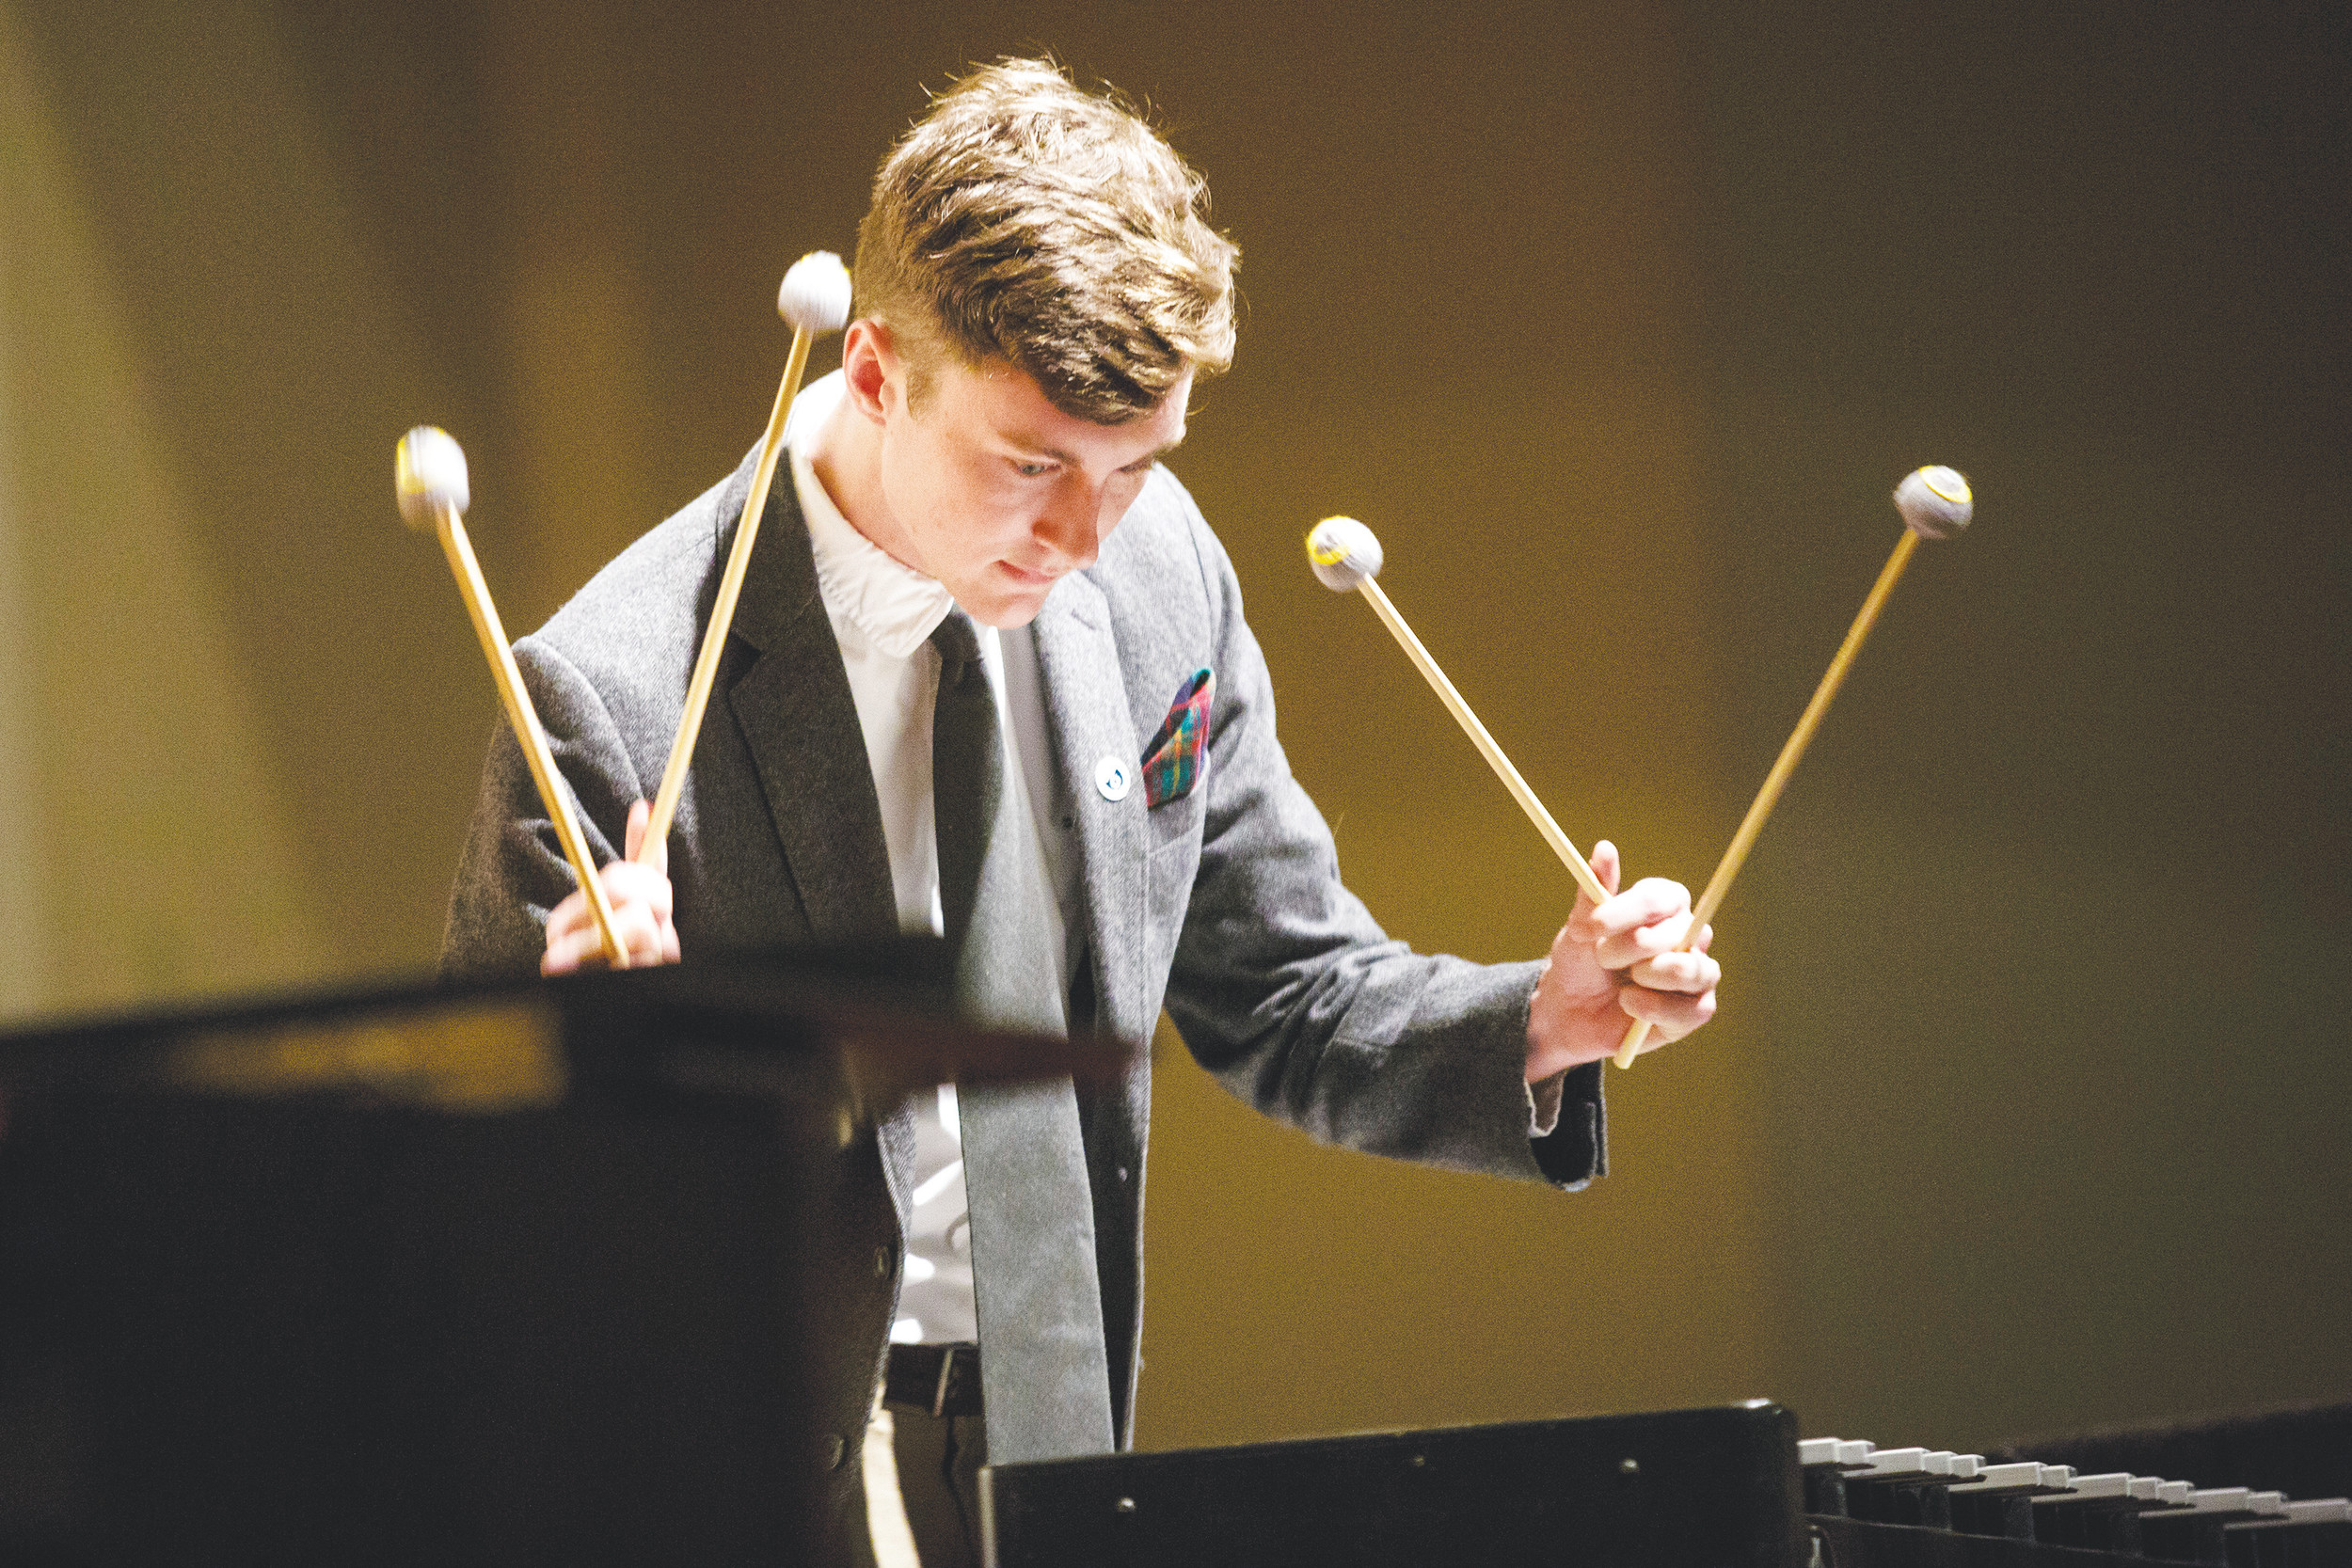 First-place instrumental finisher Michael Houde performs a piece on the vibraphone Monday evening during the final tryout to perform with the Jacksonville Symphony at the annual Concert on the Green.